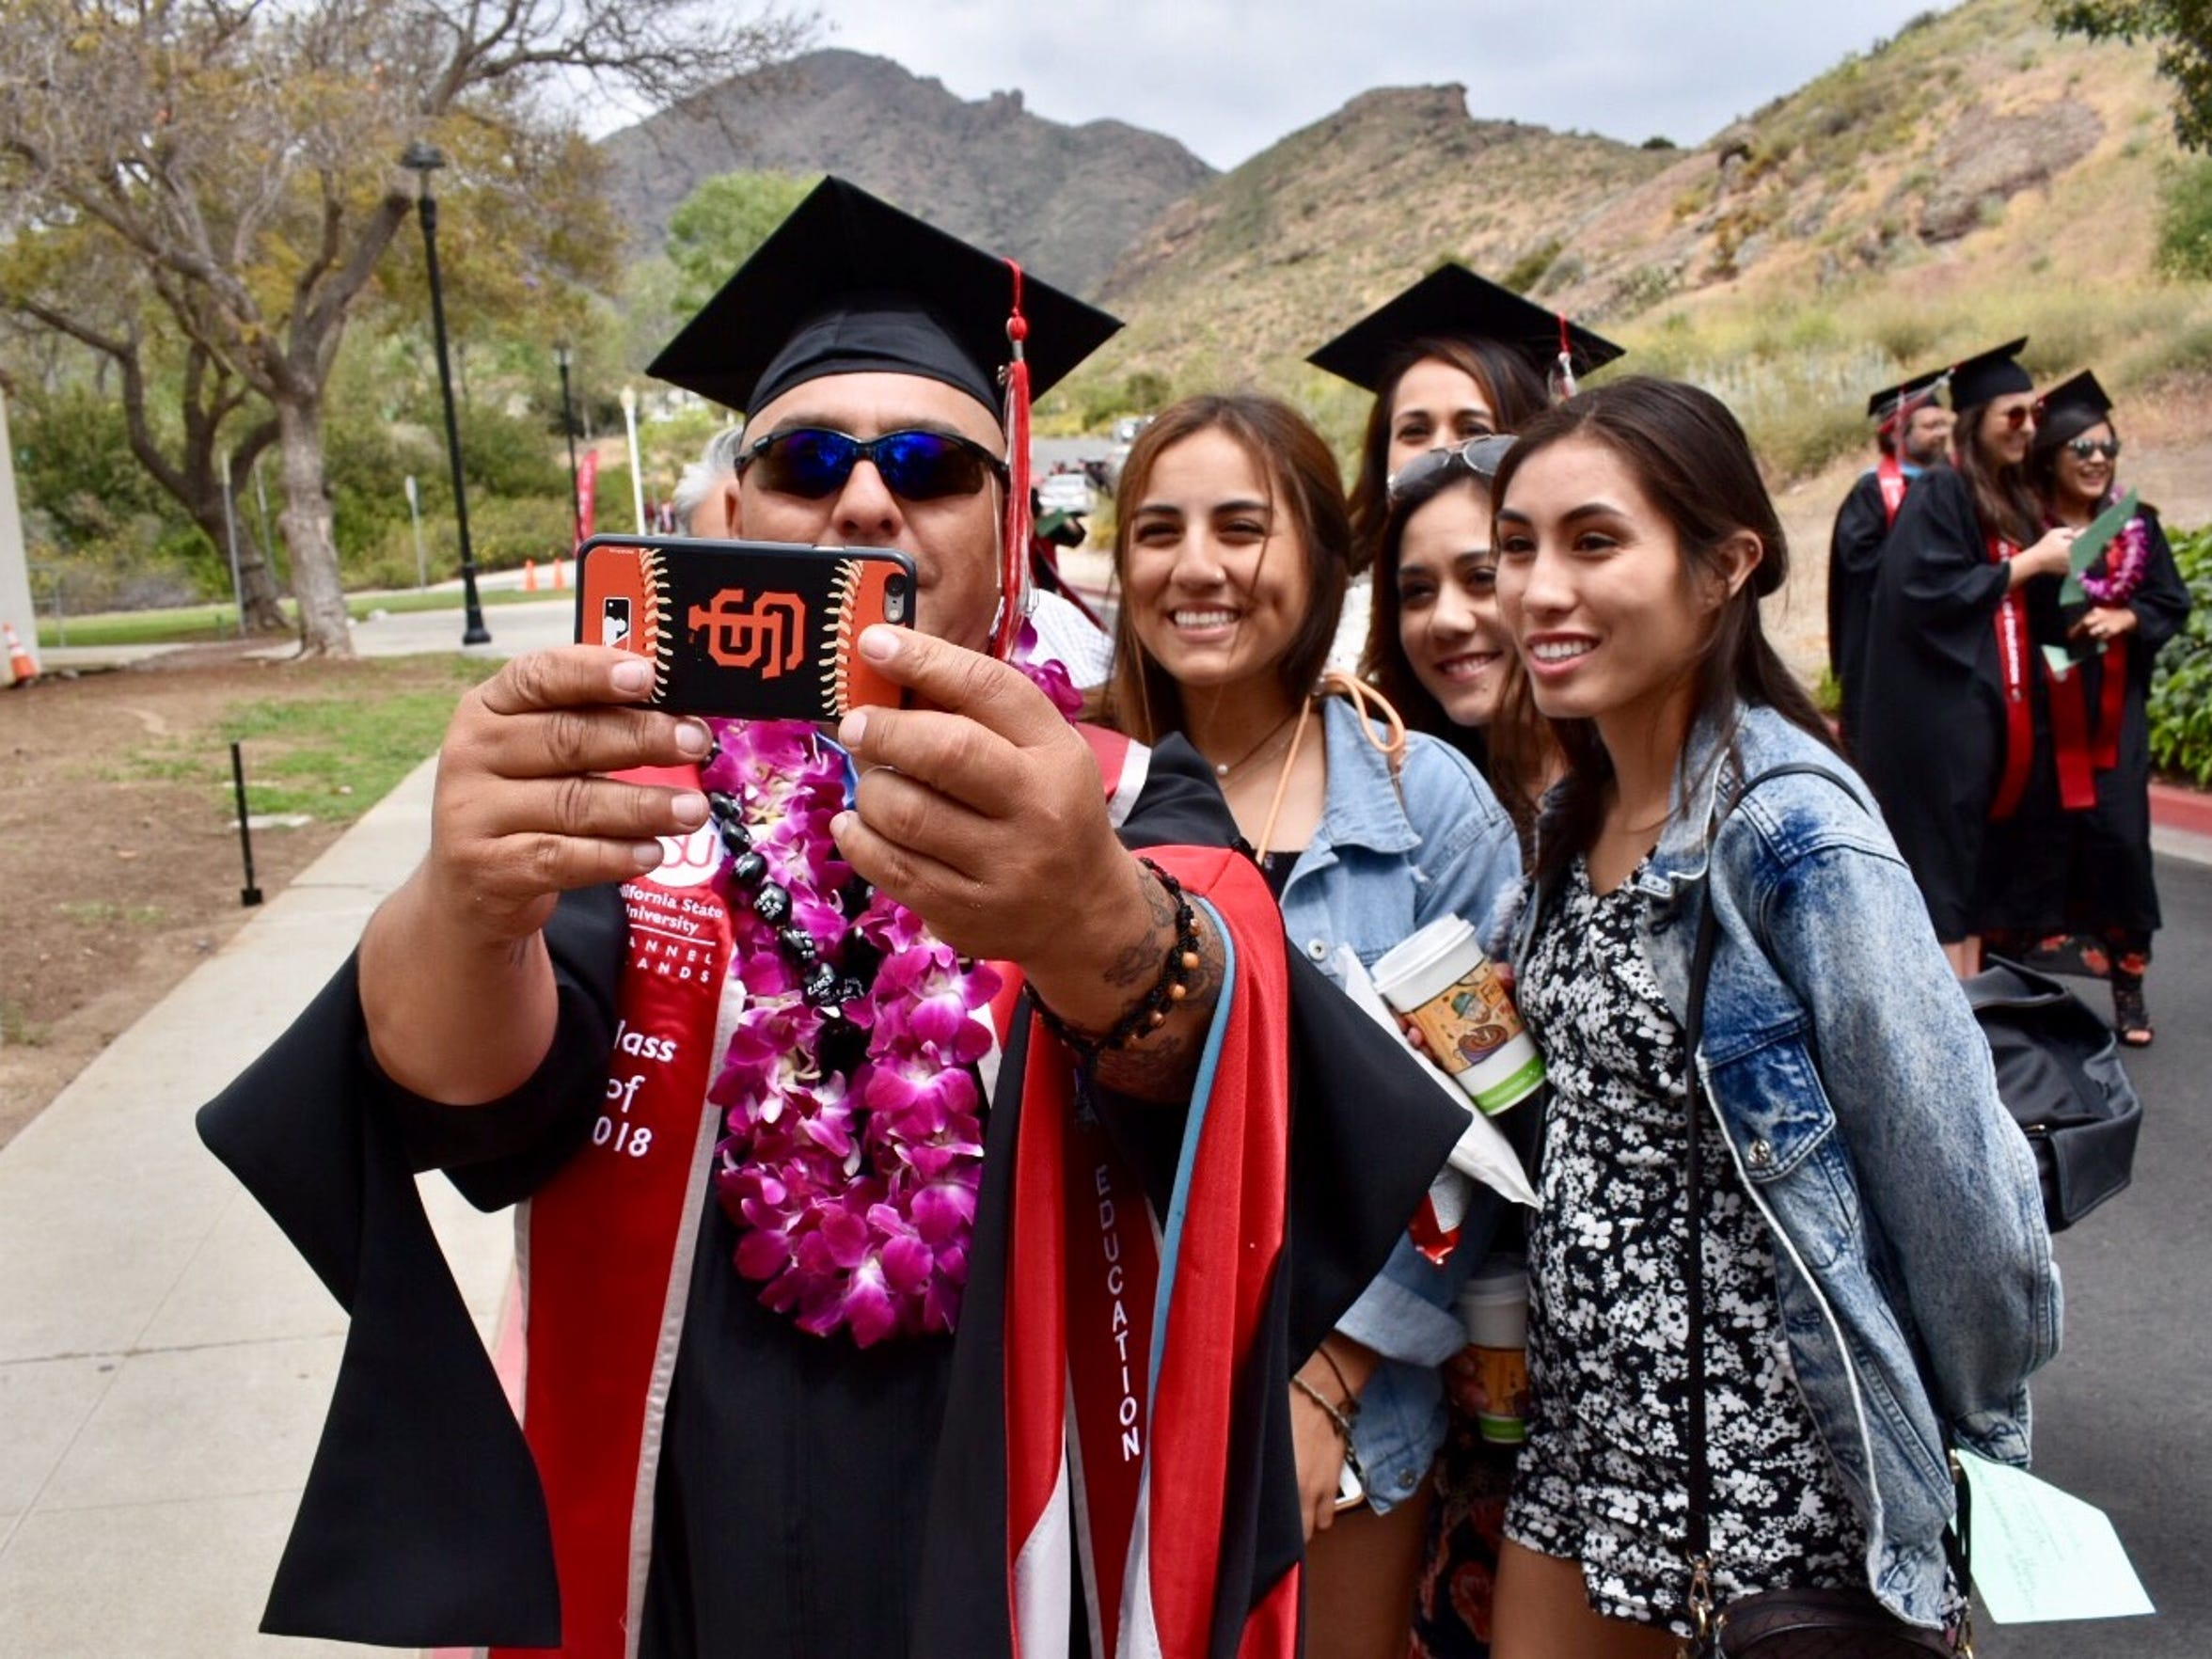 Patrick Tafoya takes a family selfie before graduation.